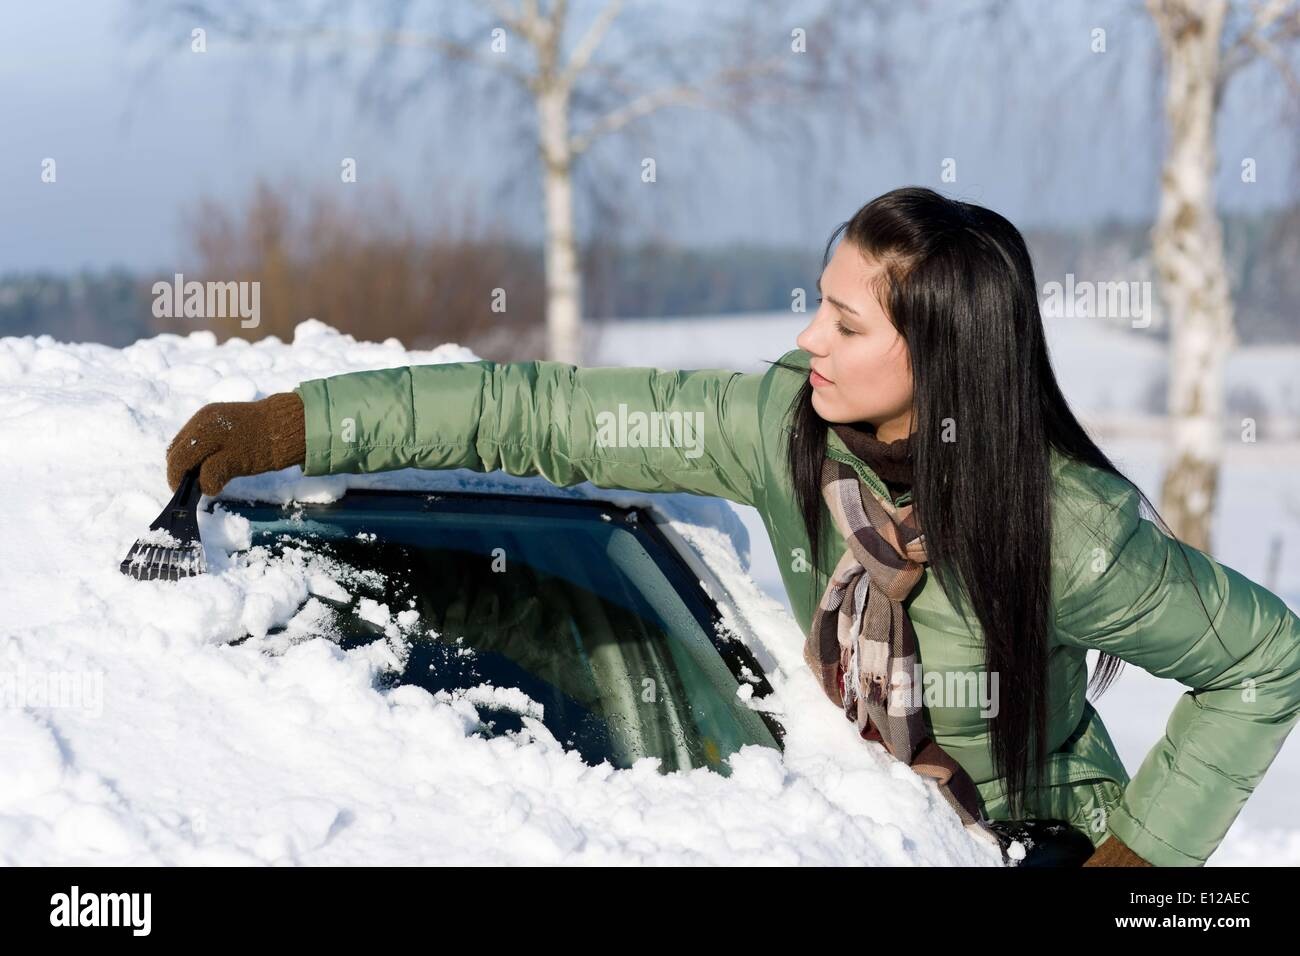 Dec. 02, 2010 - Dec. 2, 2010 - Winter car - woman remove snow from windshield with ice scraper - Stock Image